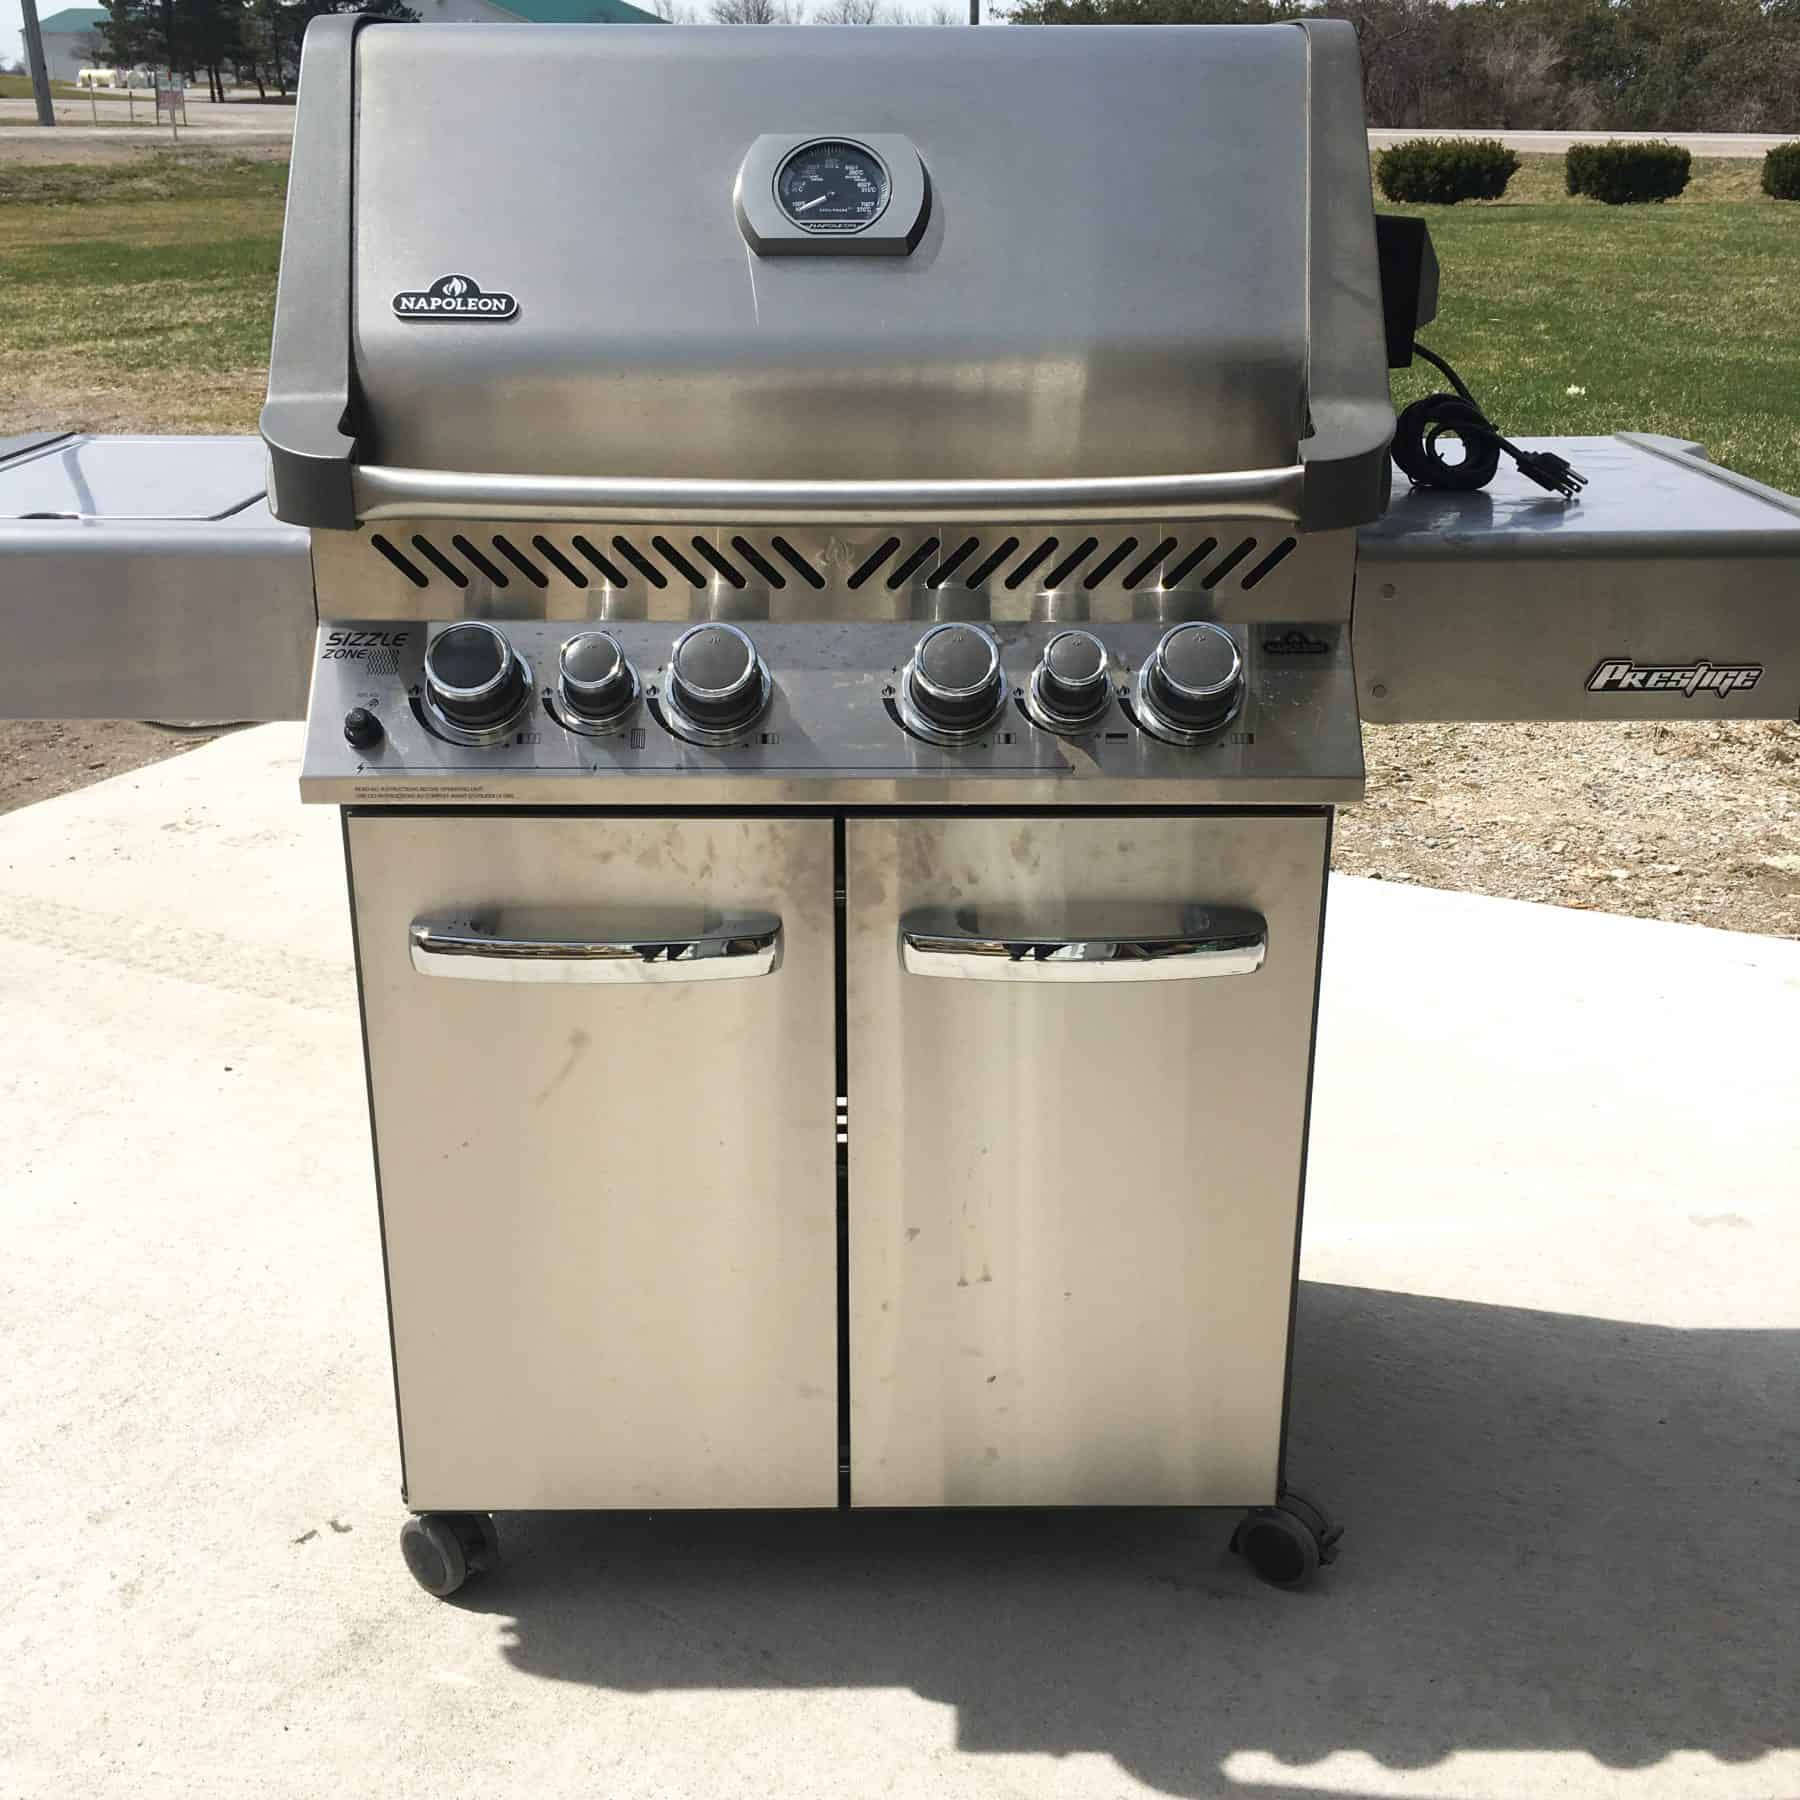 Comment Laver Grille Barbecue cleaning your napoleon barbecue for spring - safe home fireplace